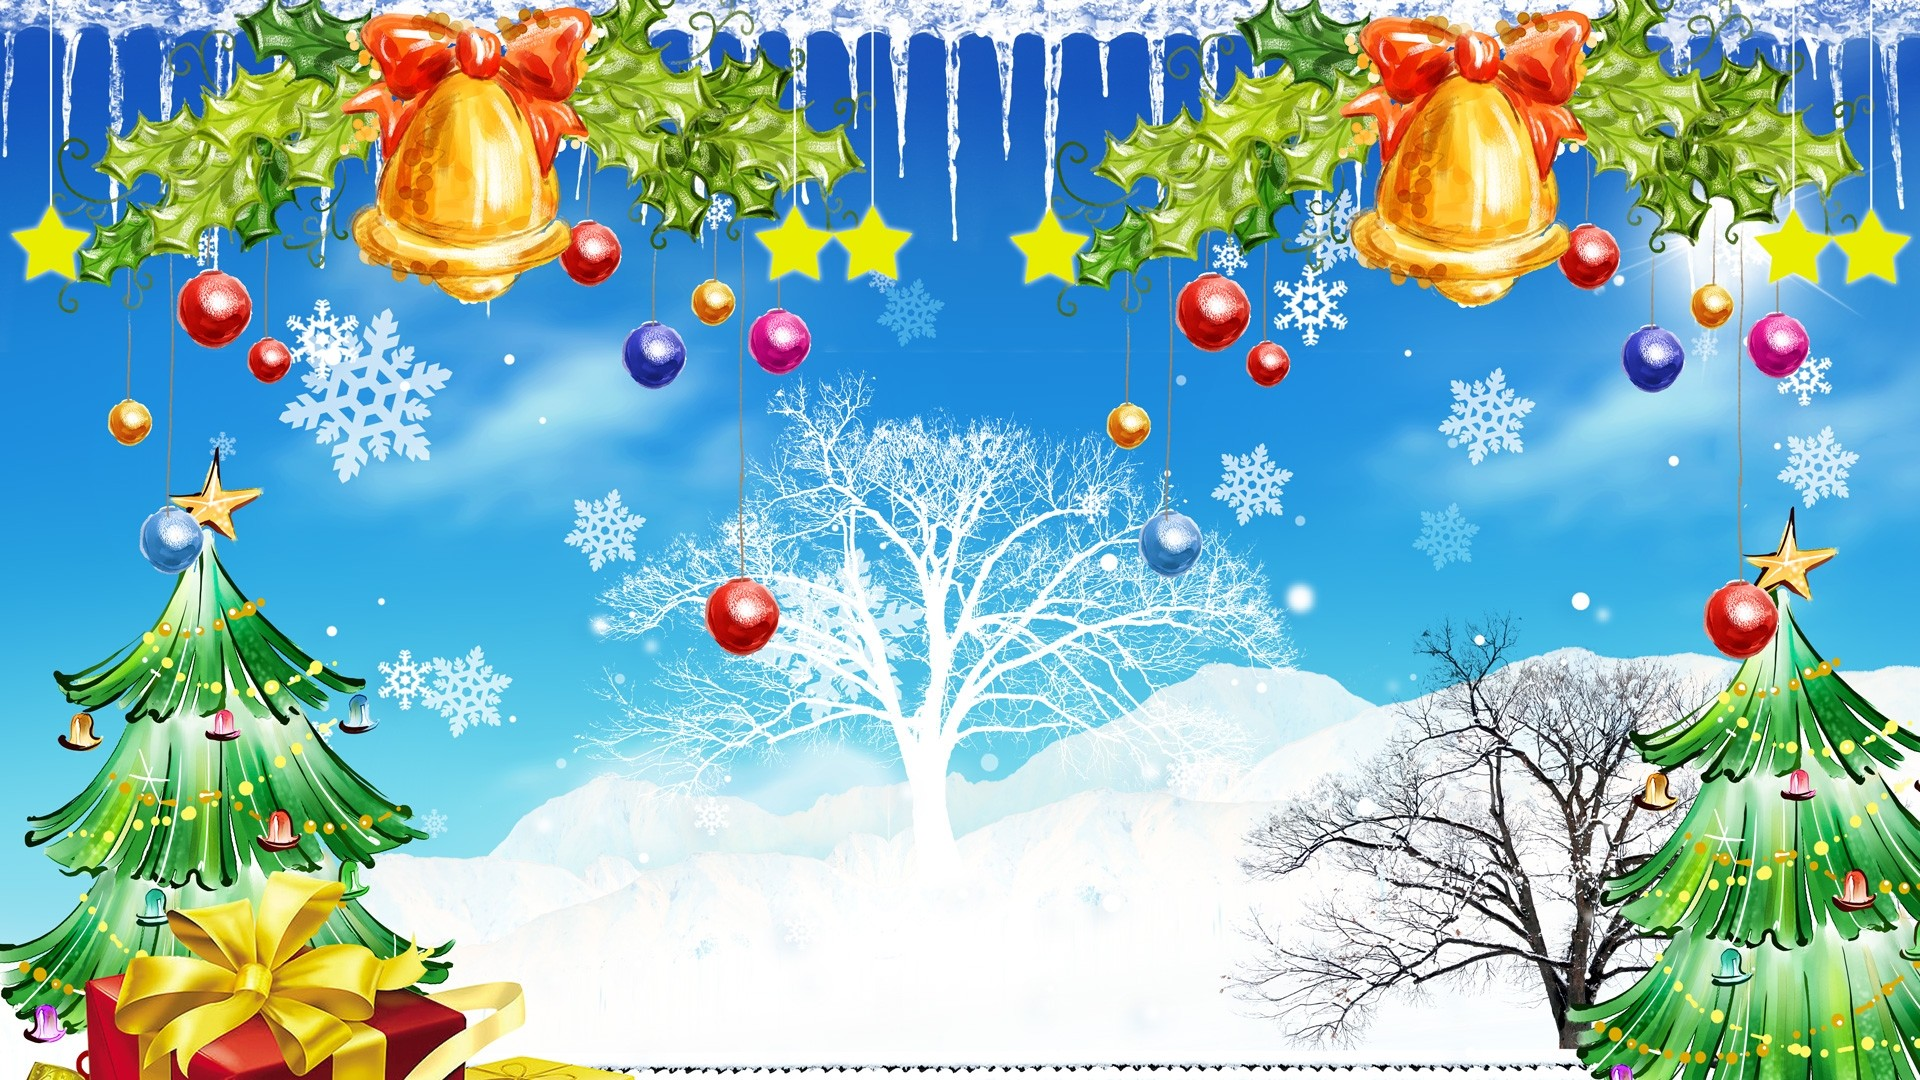 Christmas Nature And Gifts Wallpaper